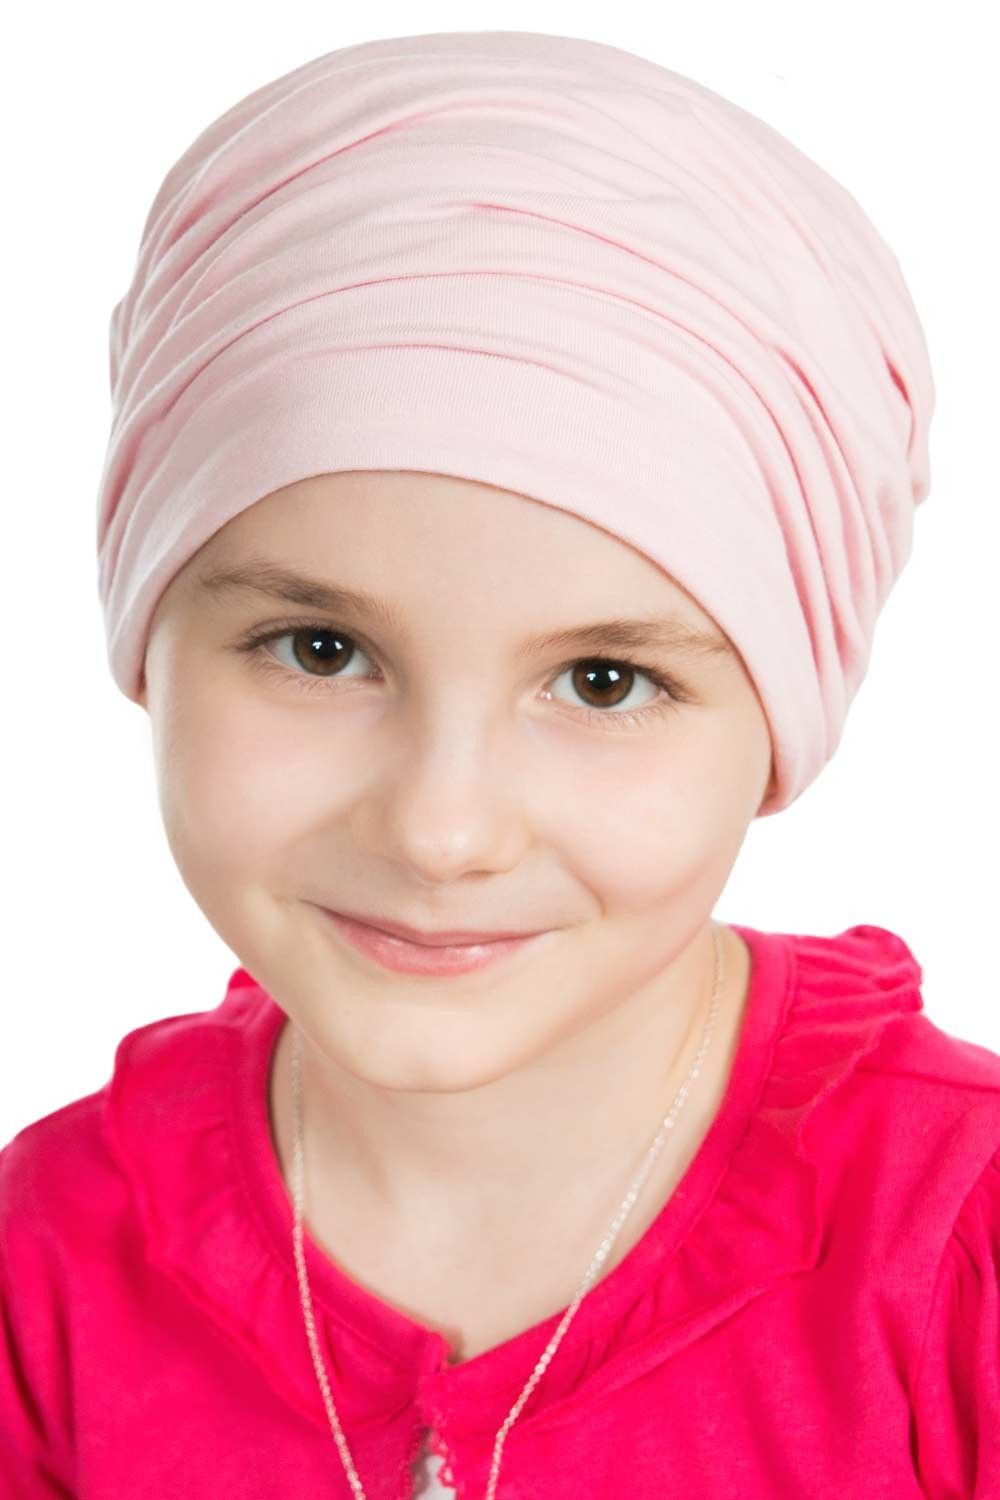 83d1fcc21 Sophie Hat for Girls   Cancer and Chemo Hats for Kids   Kids hats ...